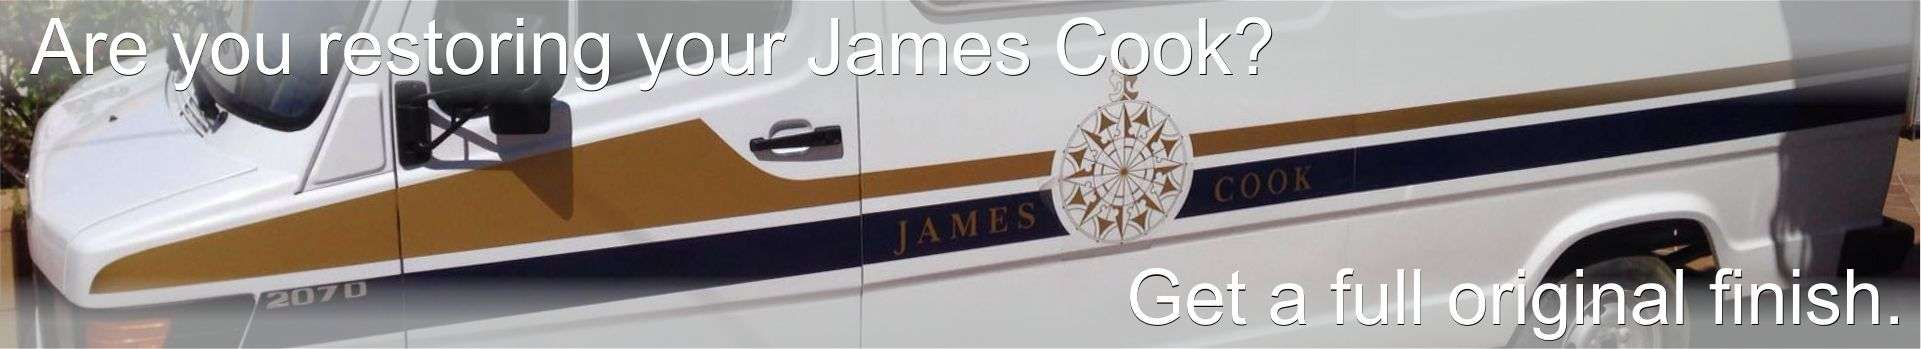 James Cook Kit